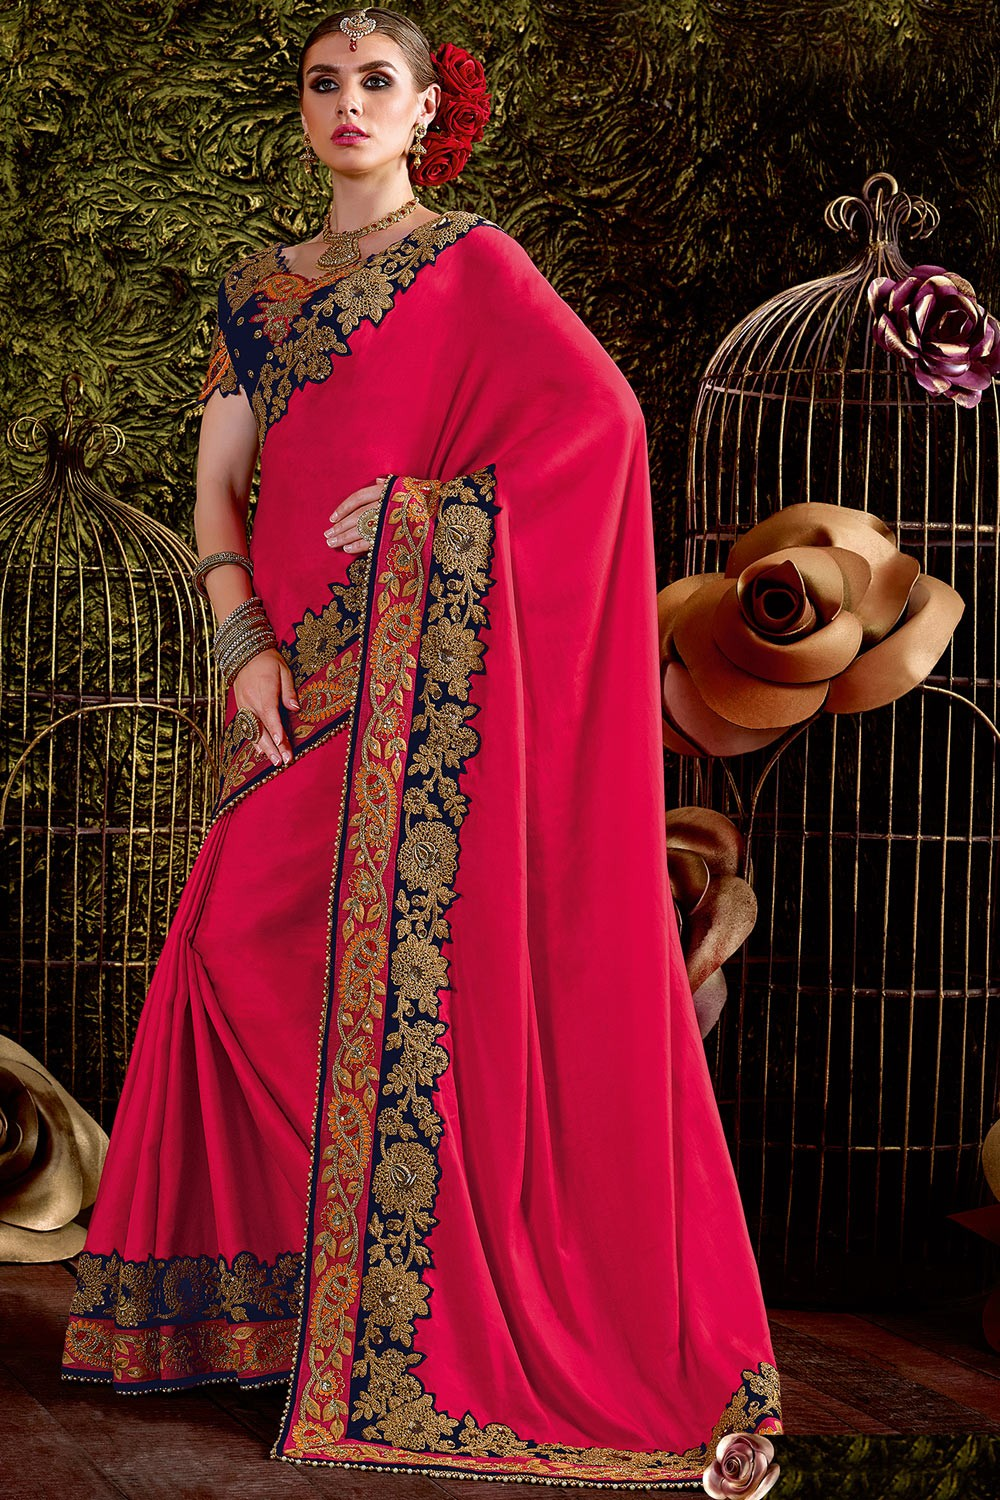 271bb79d7c7 Paaneri Designer Red Color Floral Embroidery Border Silk Georgette Saree-Product  Code-17119441304 - Party Wear - Sarees - Women s